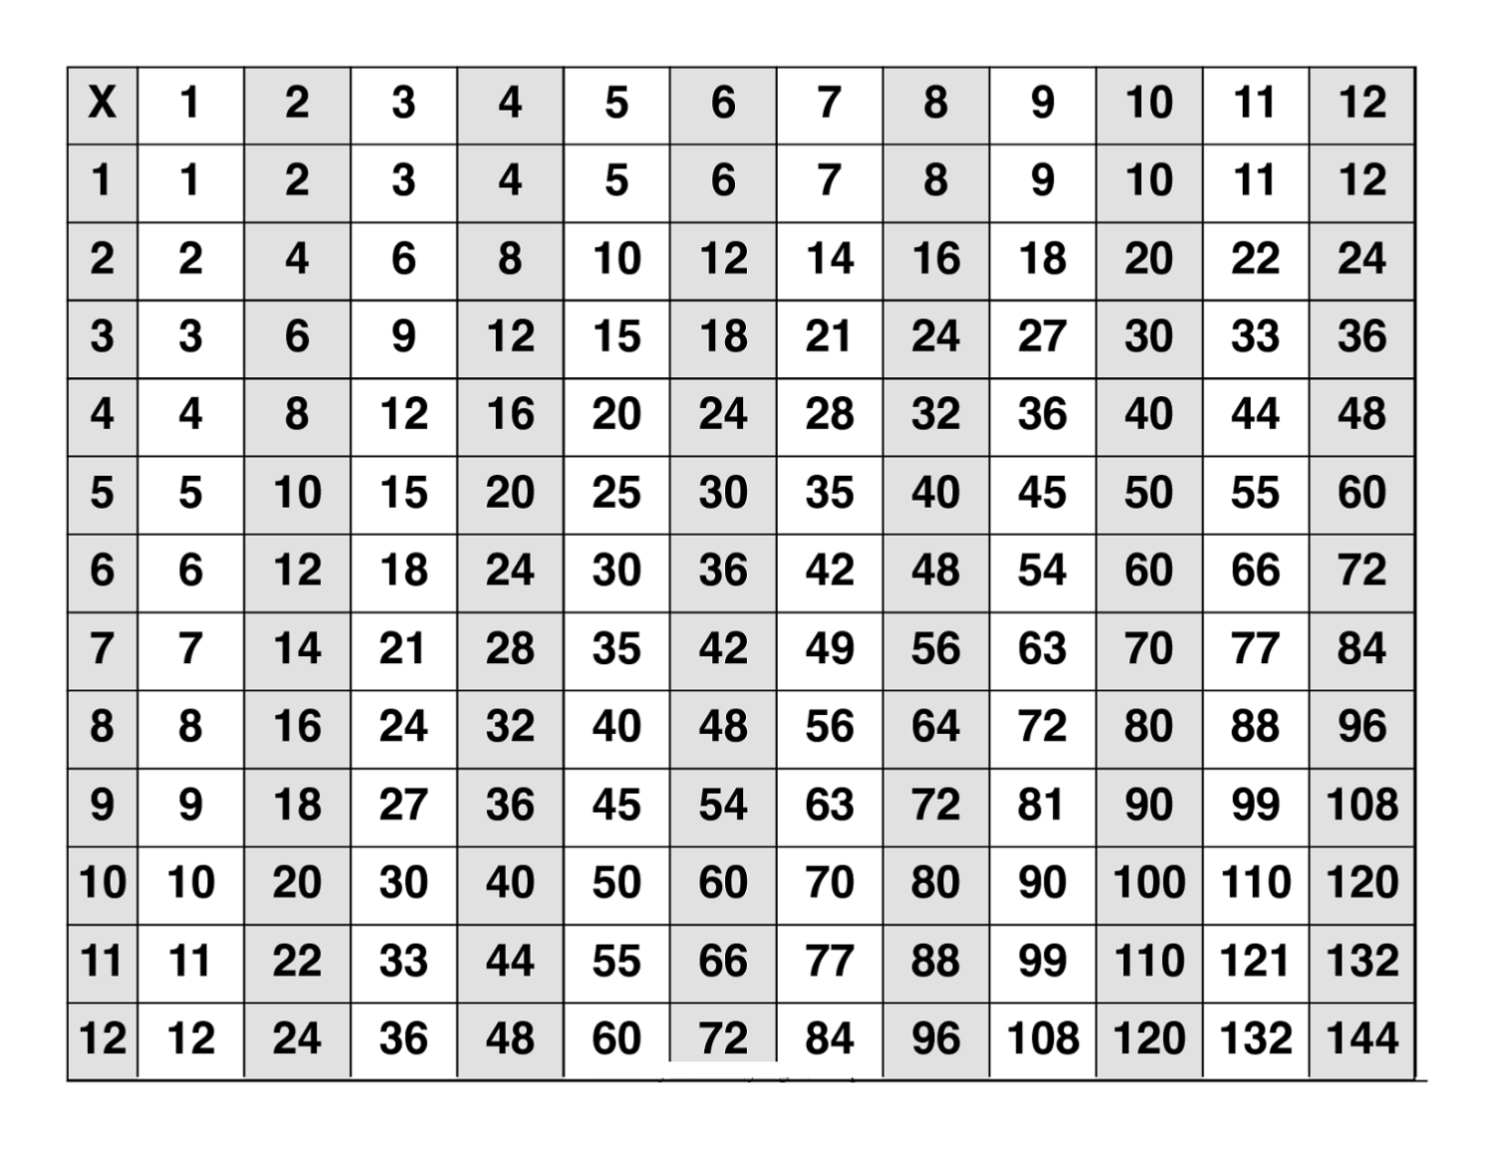 Download 12 multiplication table